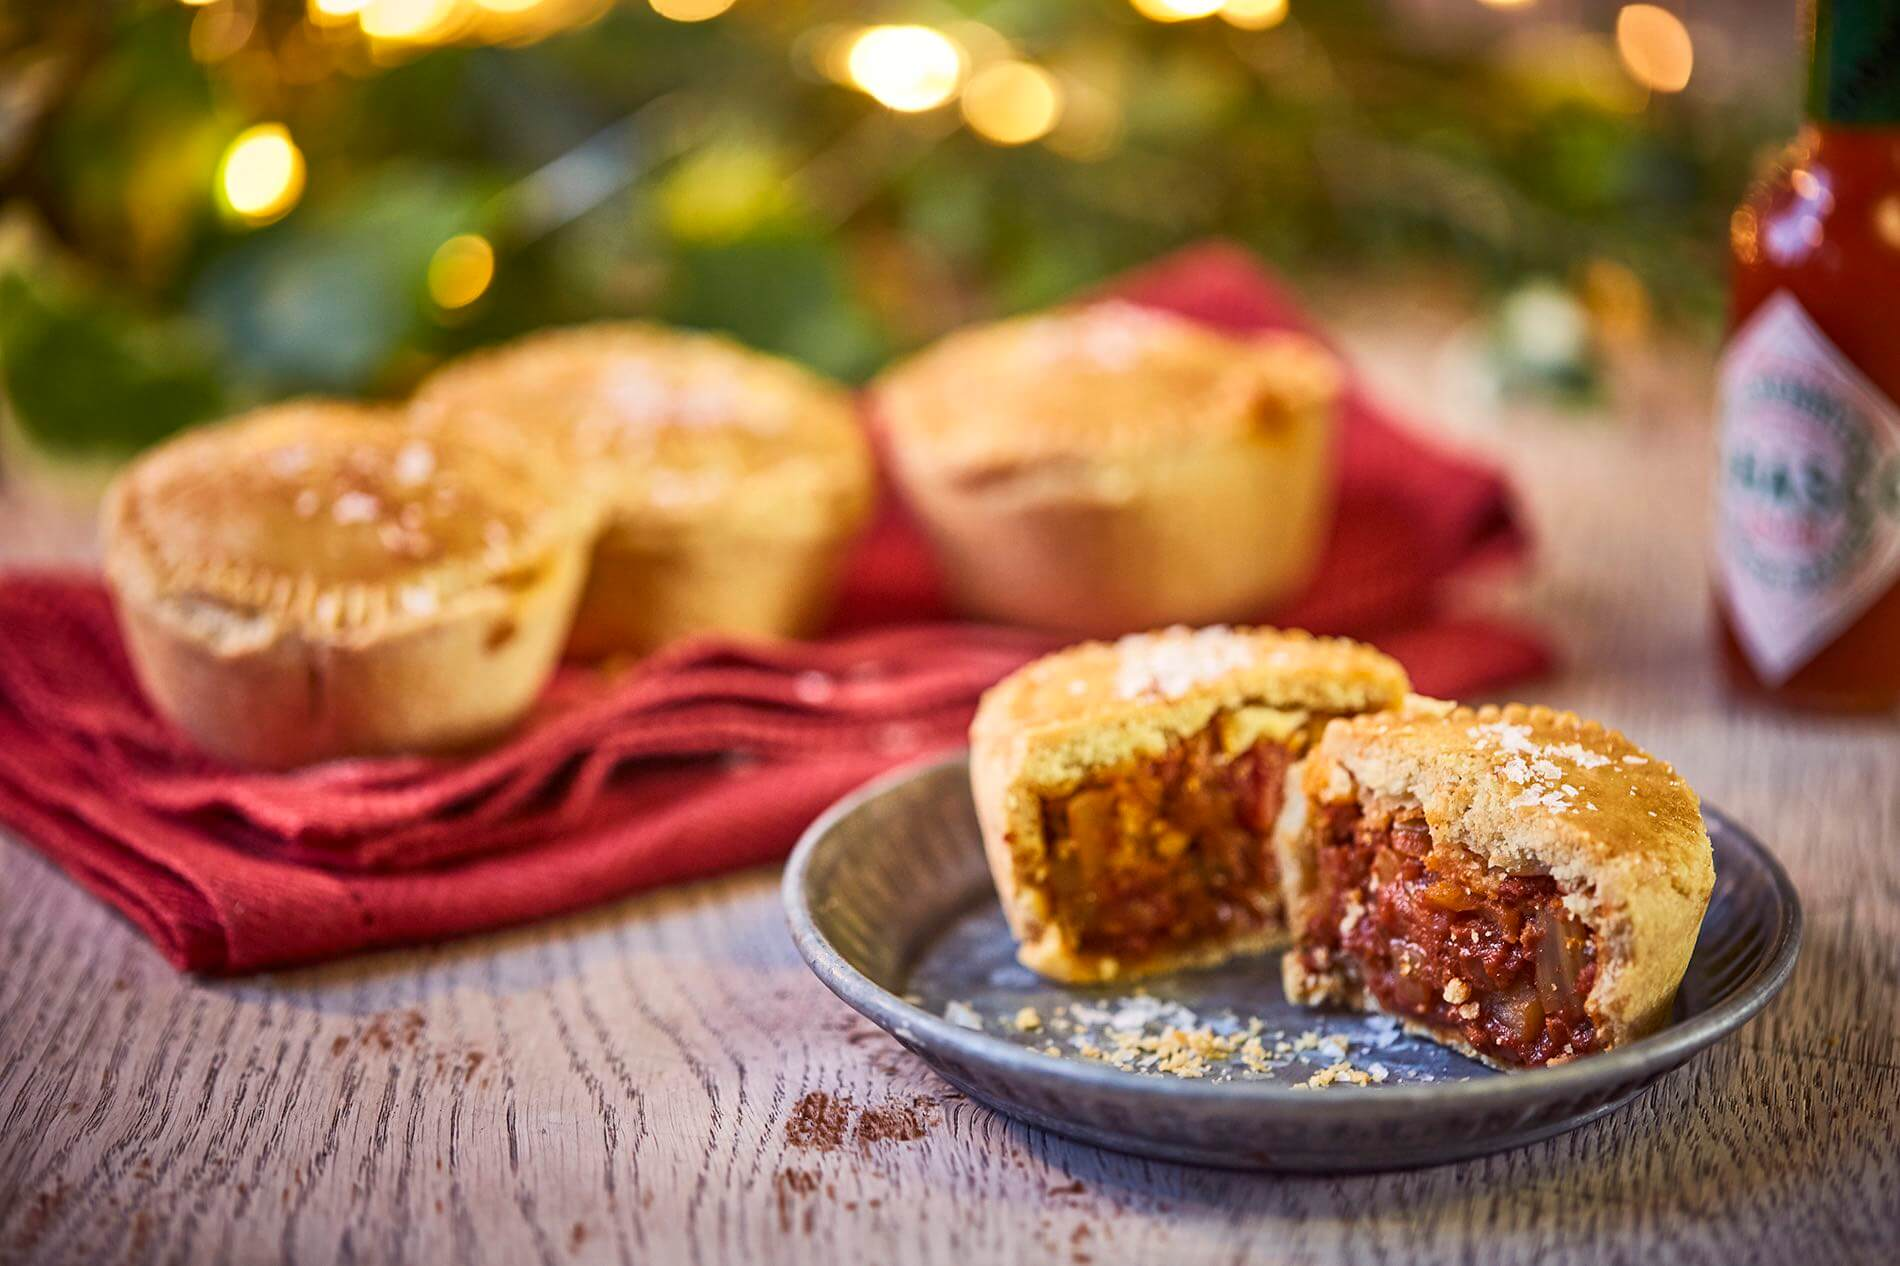 London's best mince pies, About Time: You Ate London's Quirkiest Mince Pie Creations, London's best mince pies, top mince pies in London, where to buy mince pies in London, mince pies london